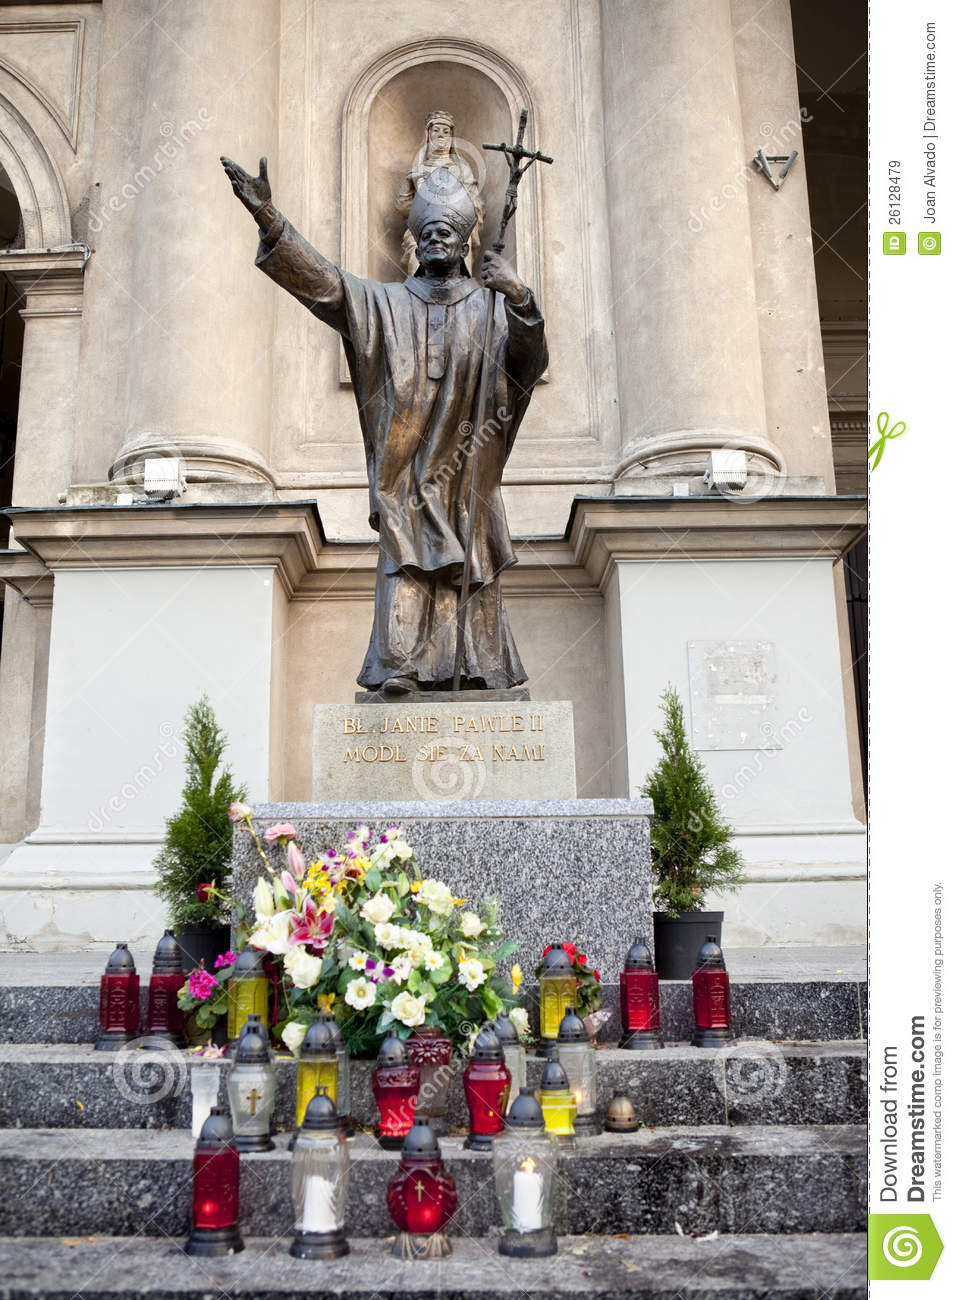 Statue of Pope John Paul the 2nd in Warsaw, Poland